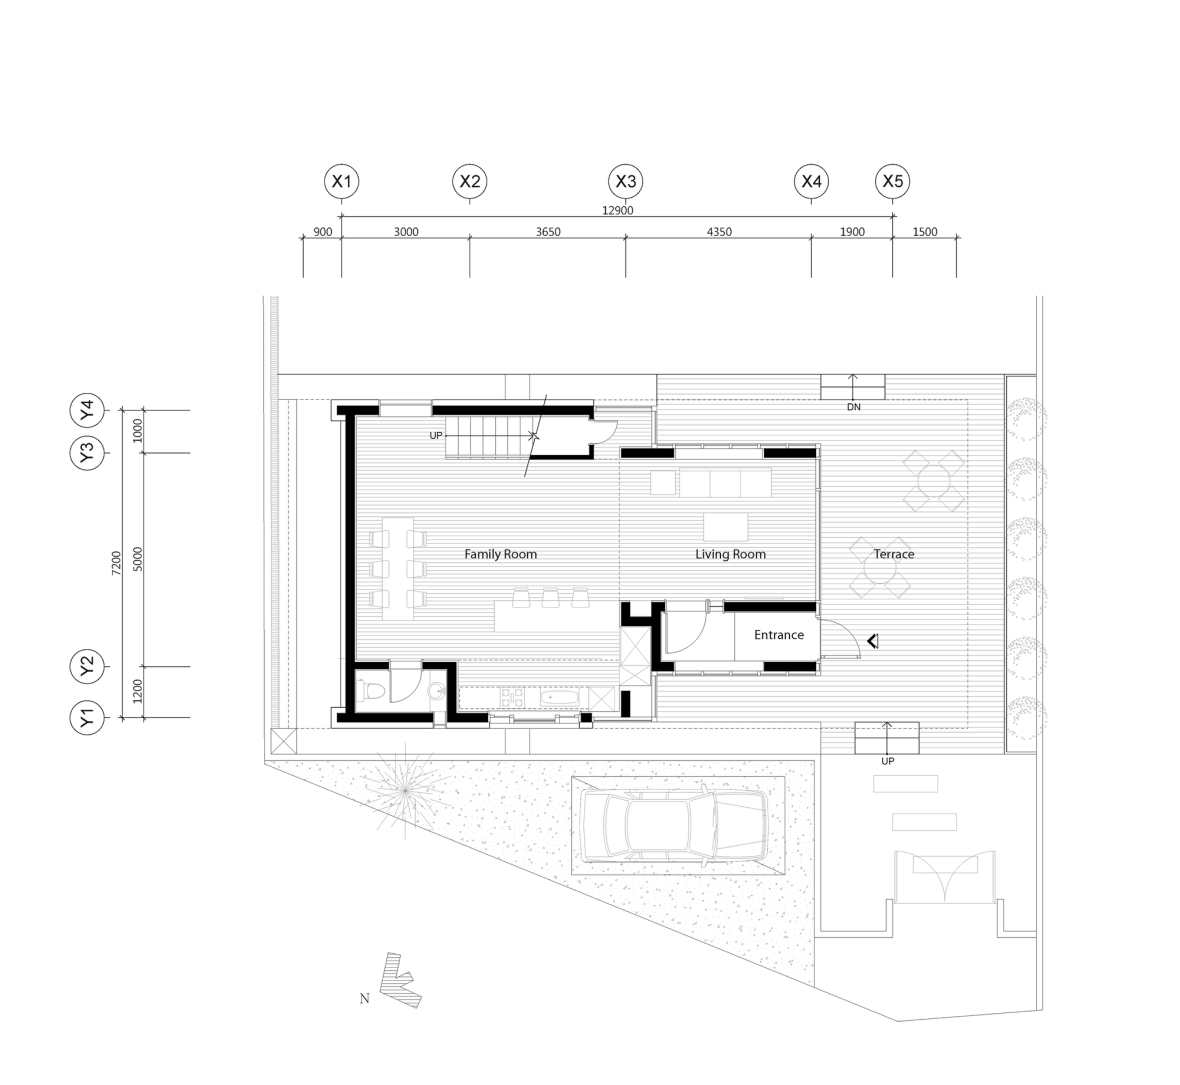 5441e368c07a80762d000476_leaning-house-praud_ground_floor_plan